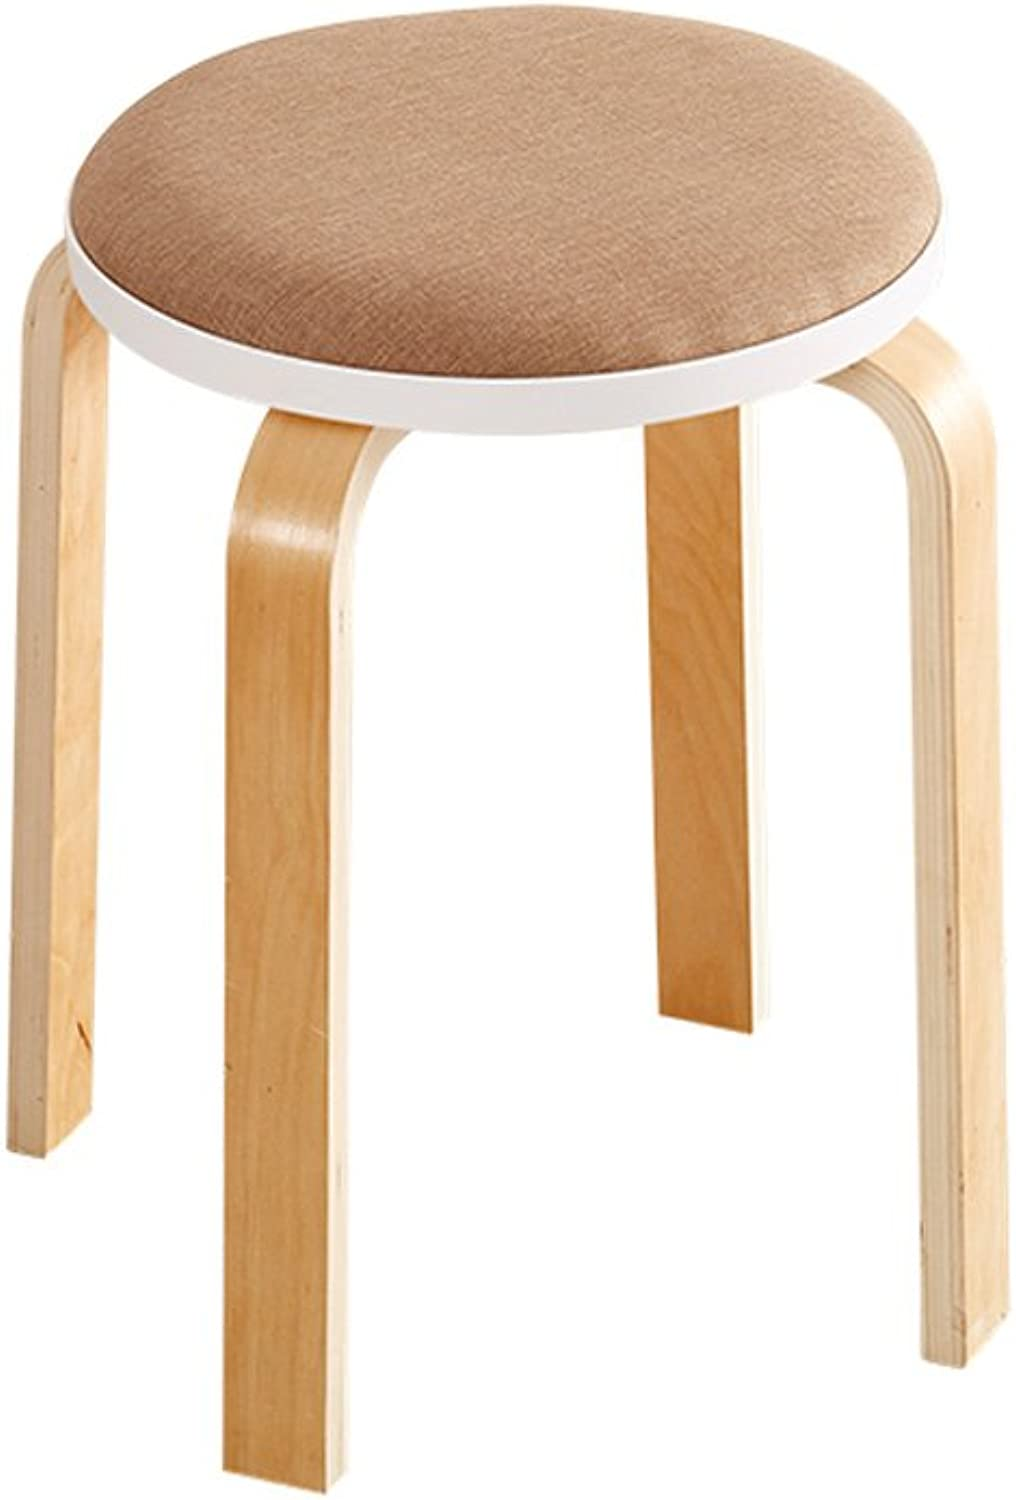 ZPWSNH Stool Creative Fashion Solid Wood Living Room Small Chair Home Simple Modern Fabric Table Bench Adult Chair 45x32cm Bar Stool (color   Bronze)